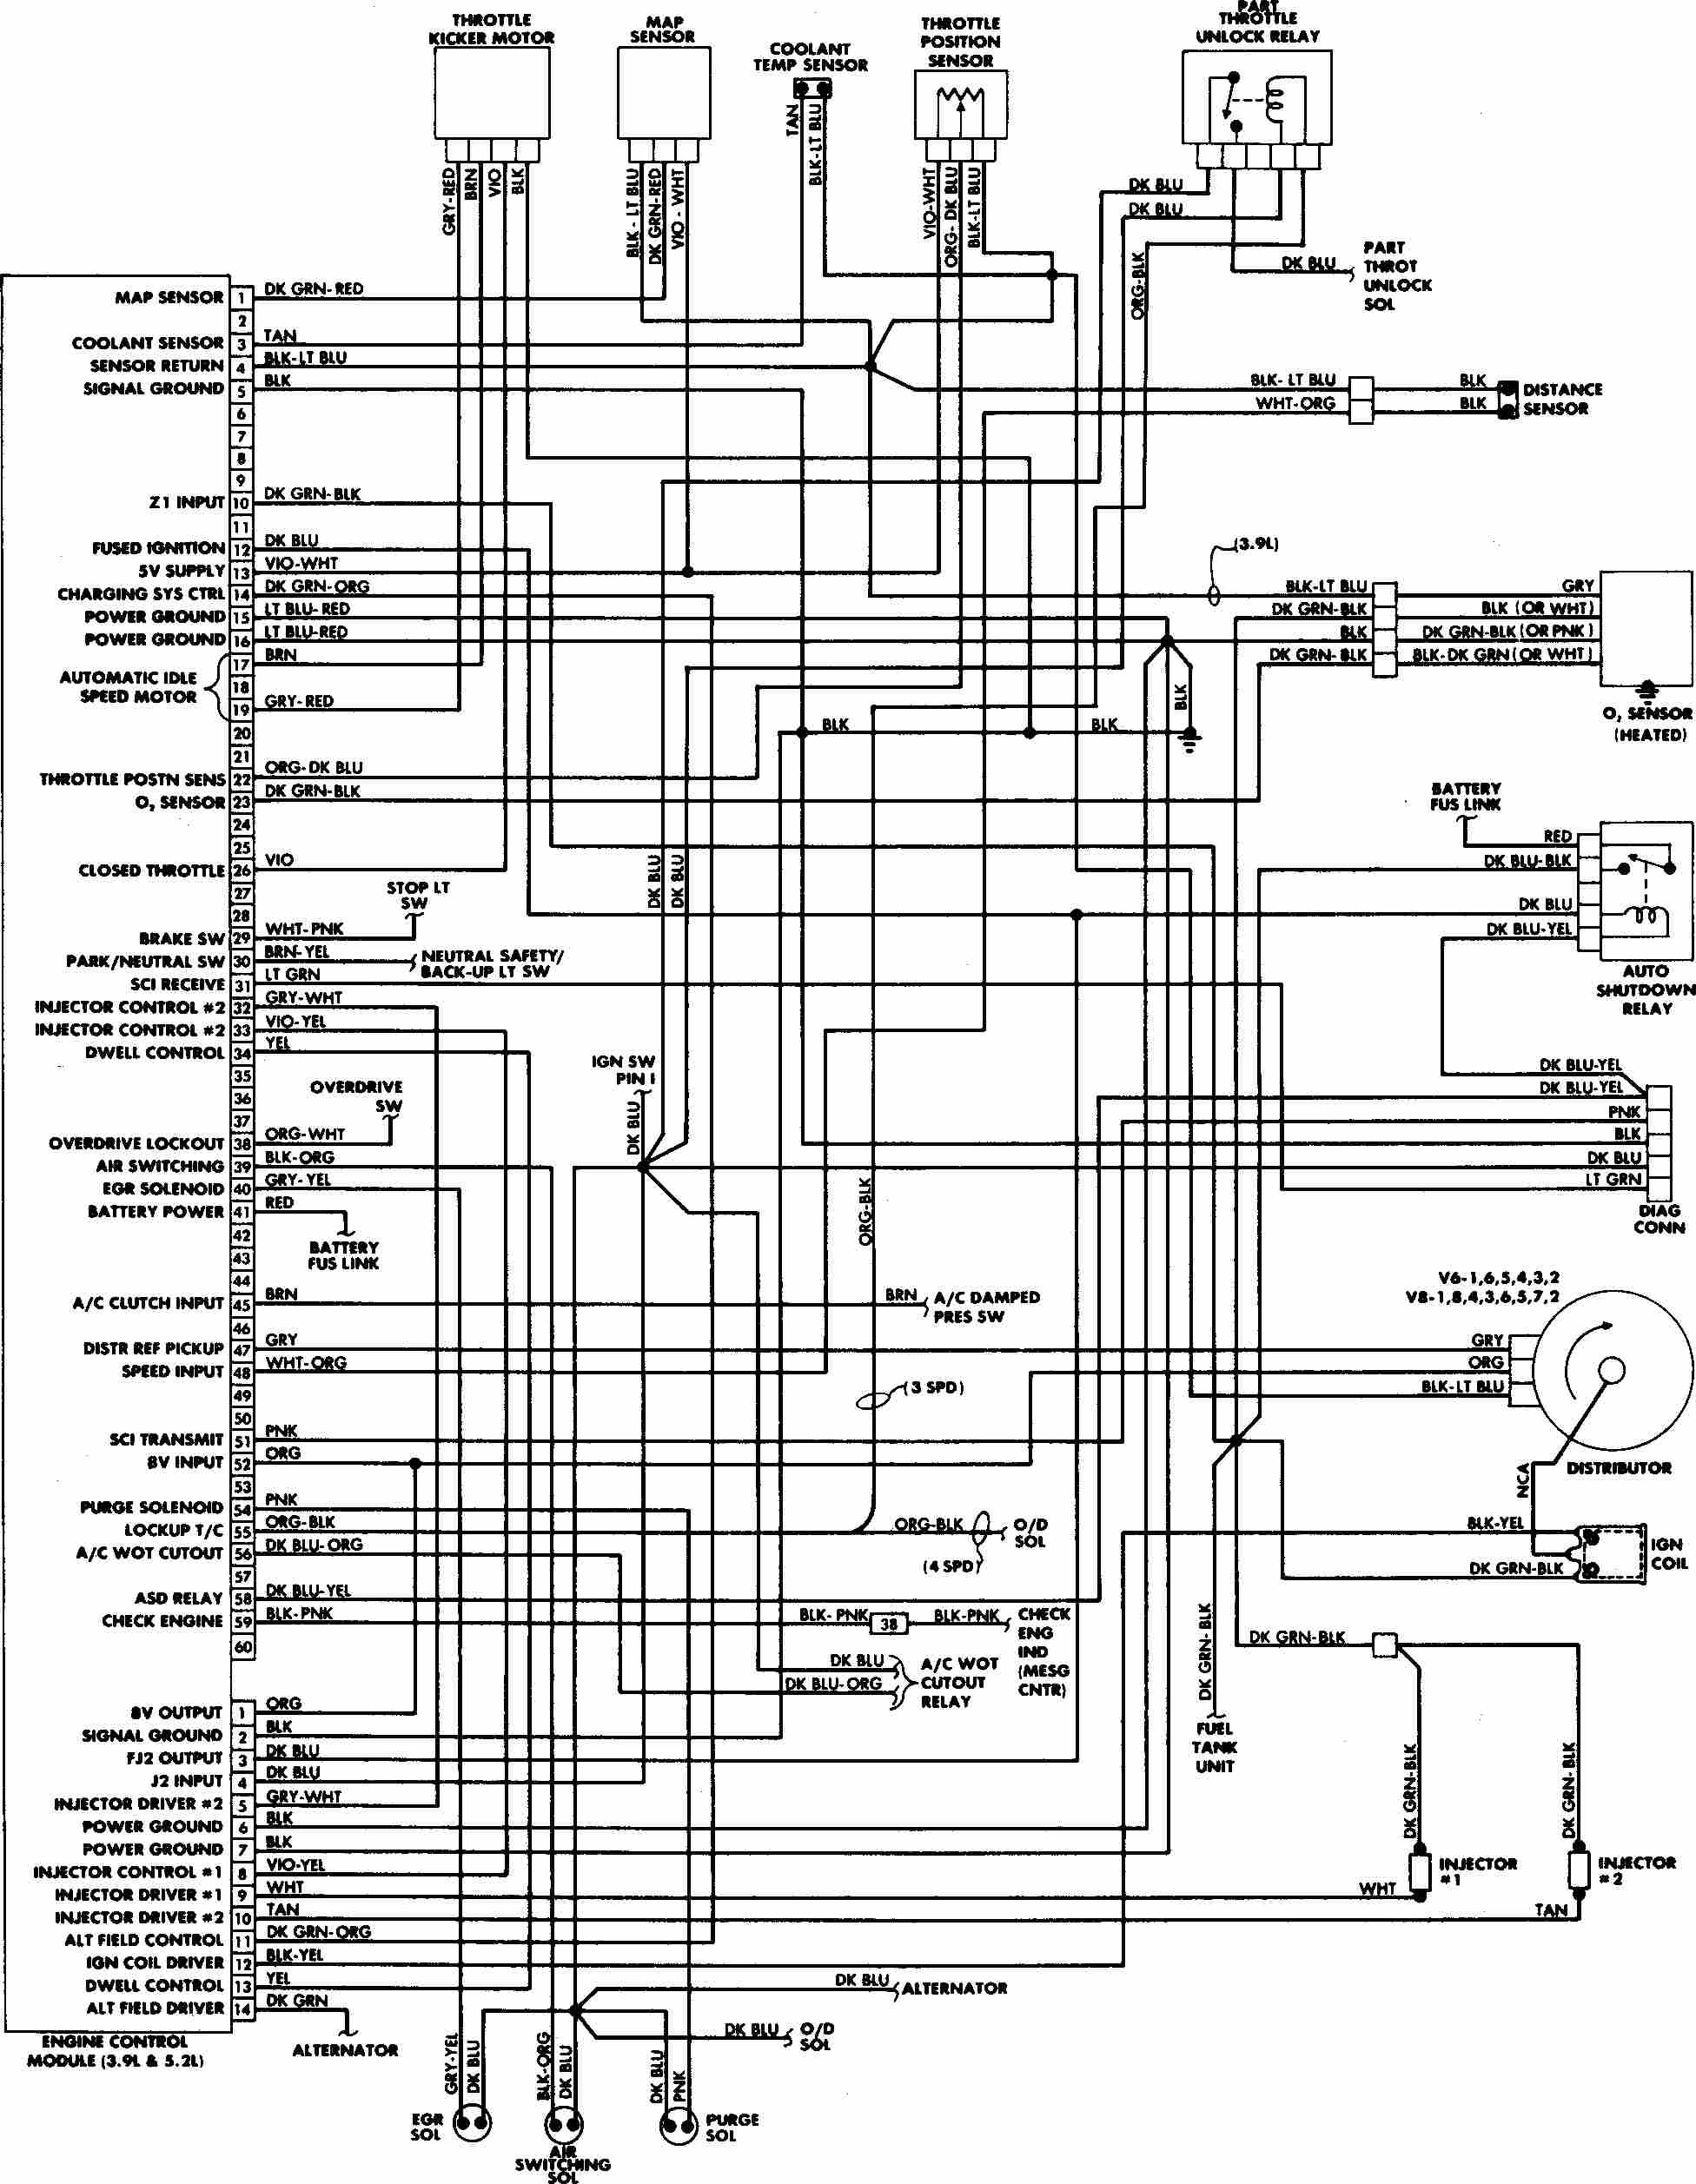 2003 Dodge Ram 1500 Engine Diagram 2003 Dodge Durango Emissions Diagram  Free Download Wiring Diagram Of